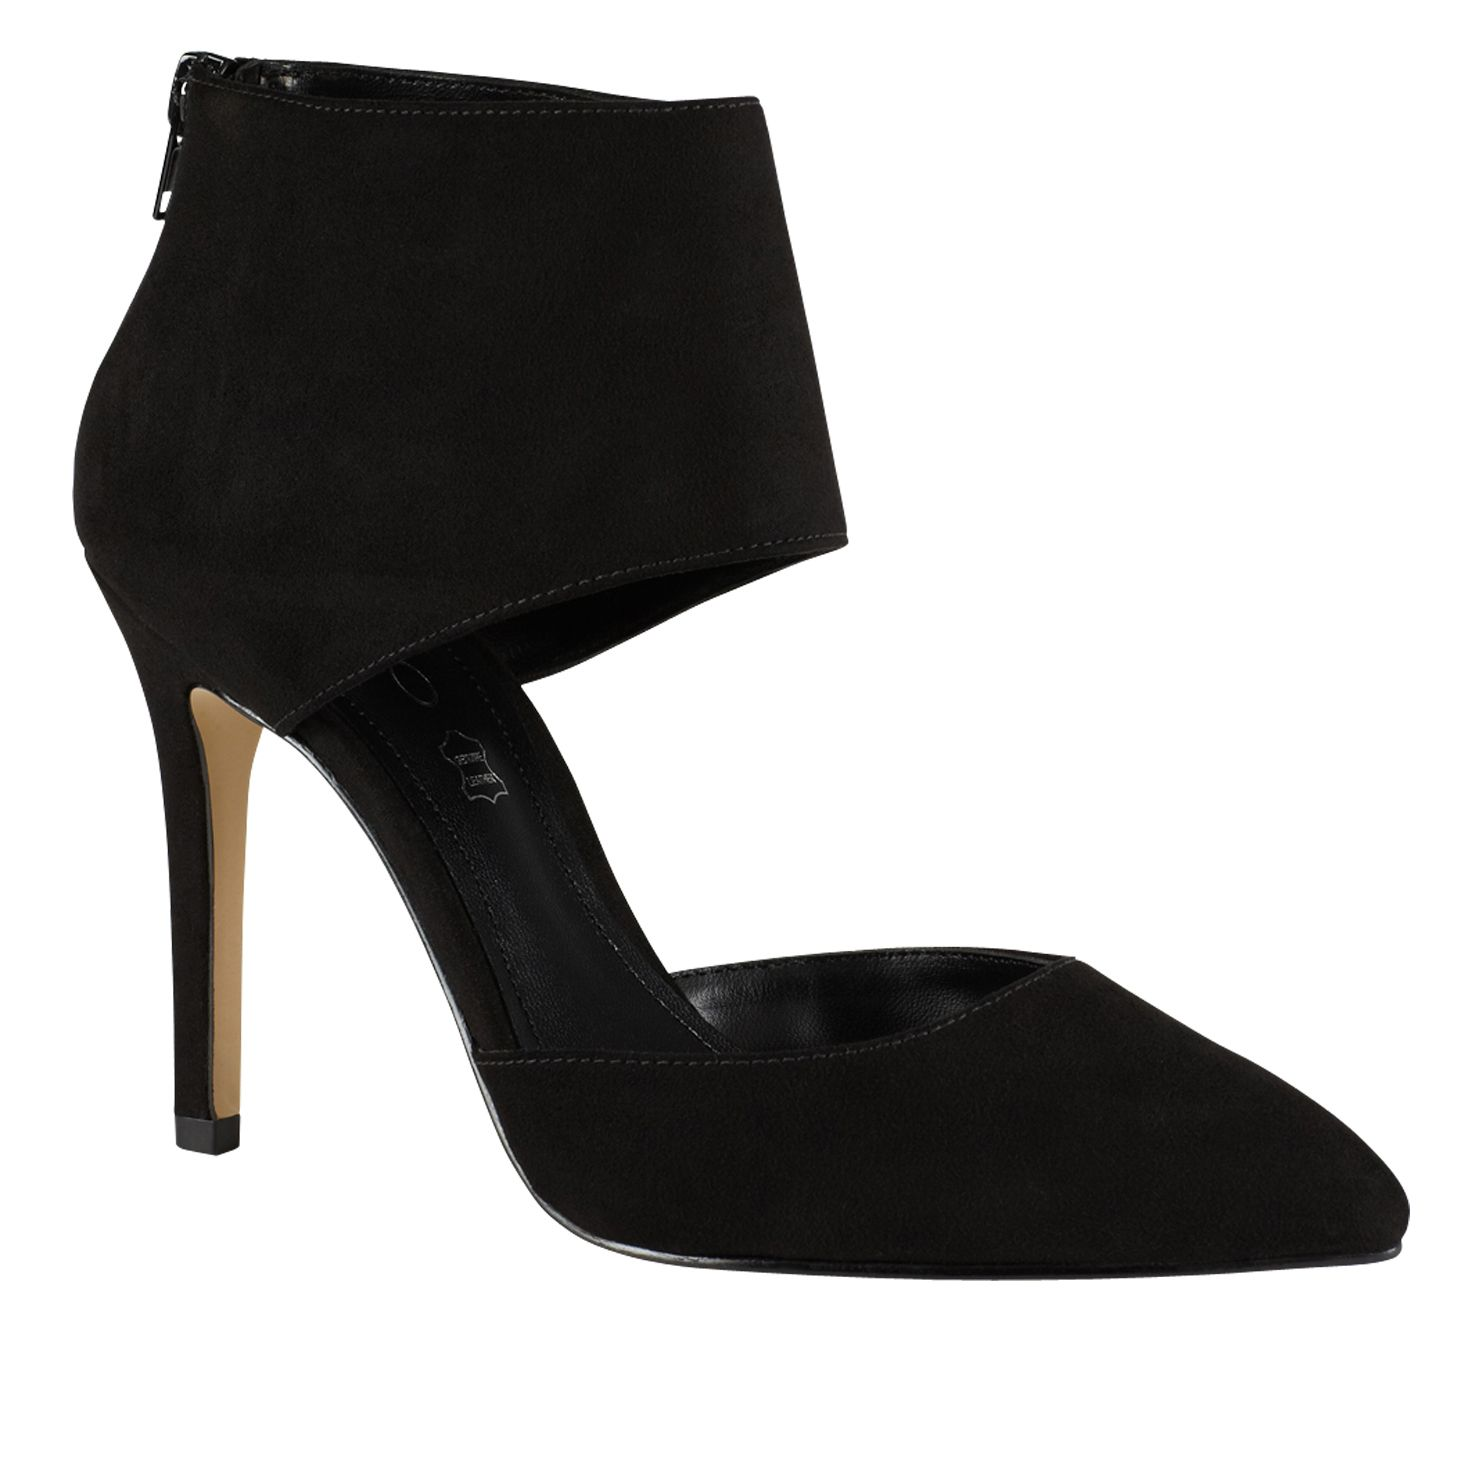 Carmelithe Stilleto Court Shoes